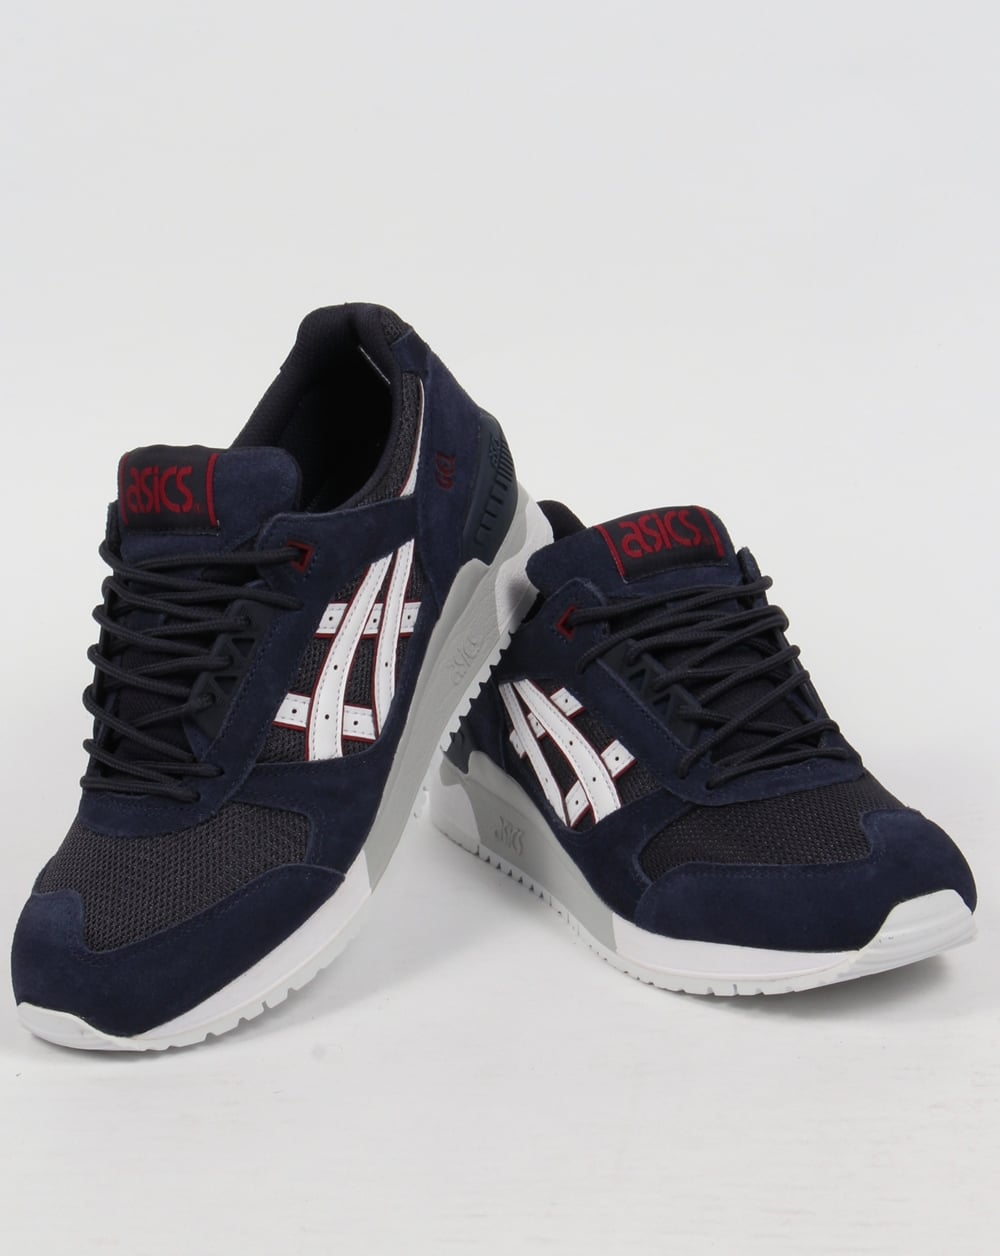 asics trainers navy